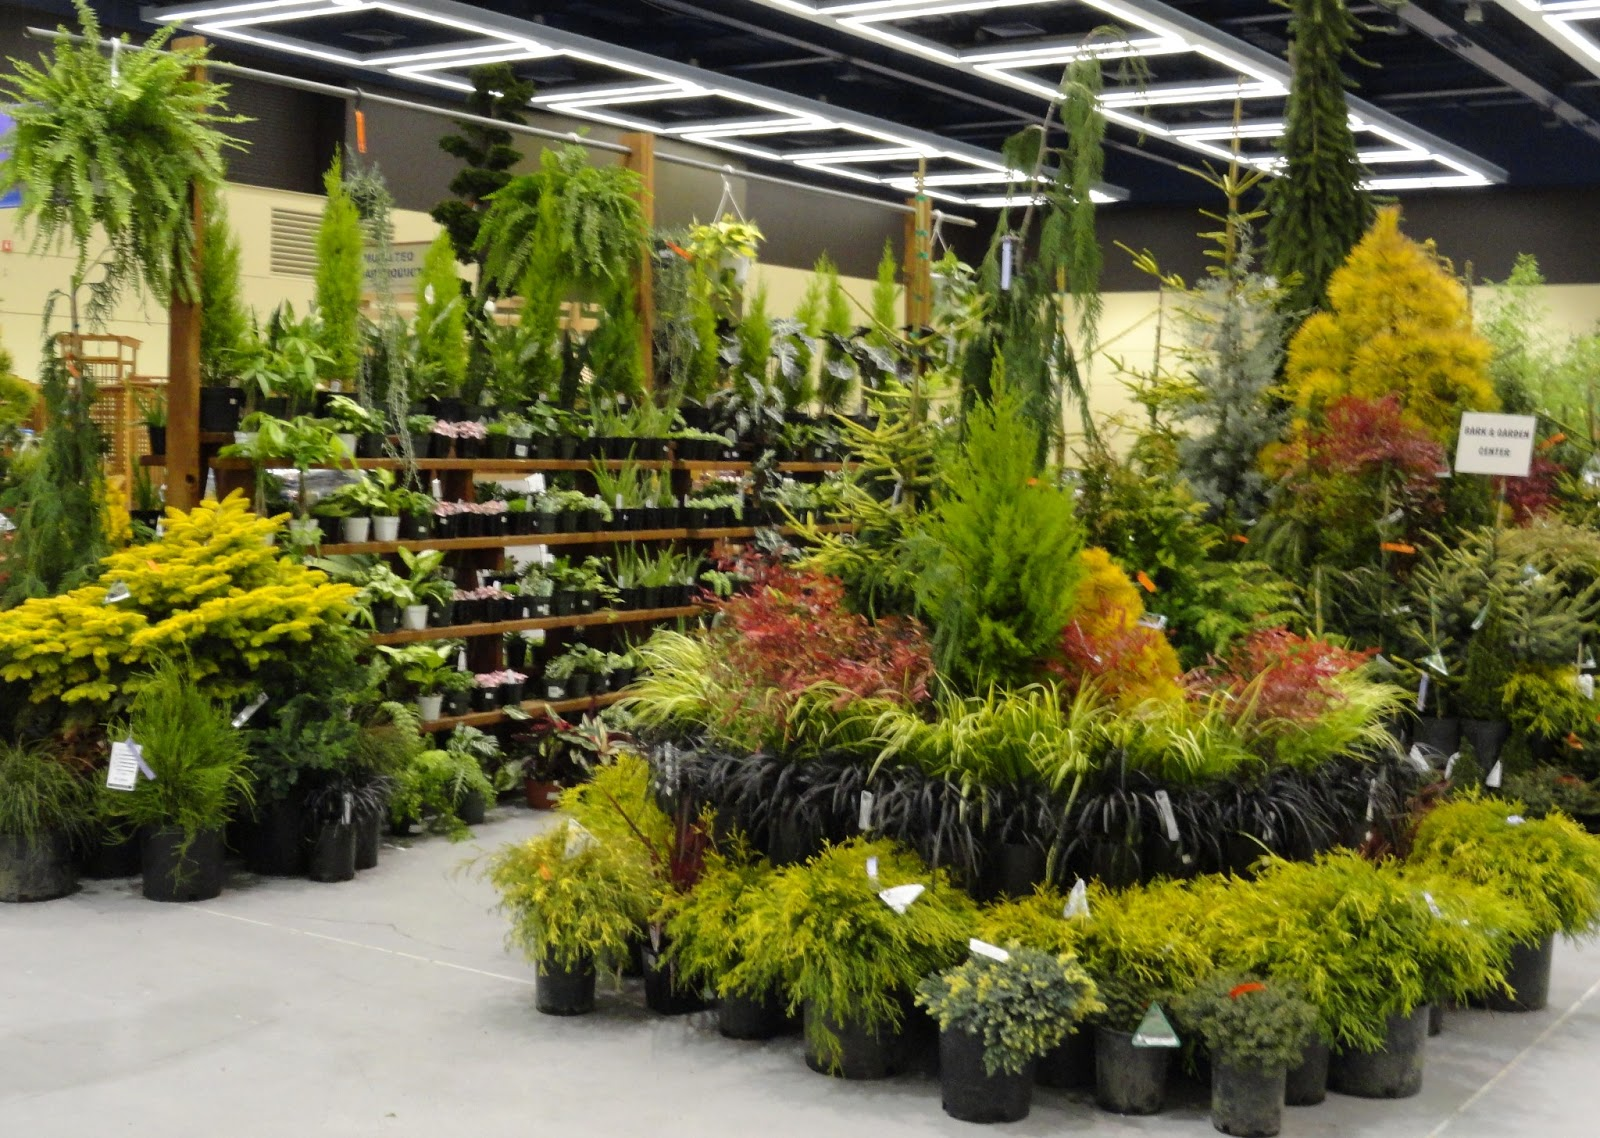 And I Like Their Display Fixture, So Easy To See All The Plants!